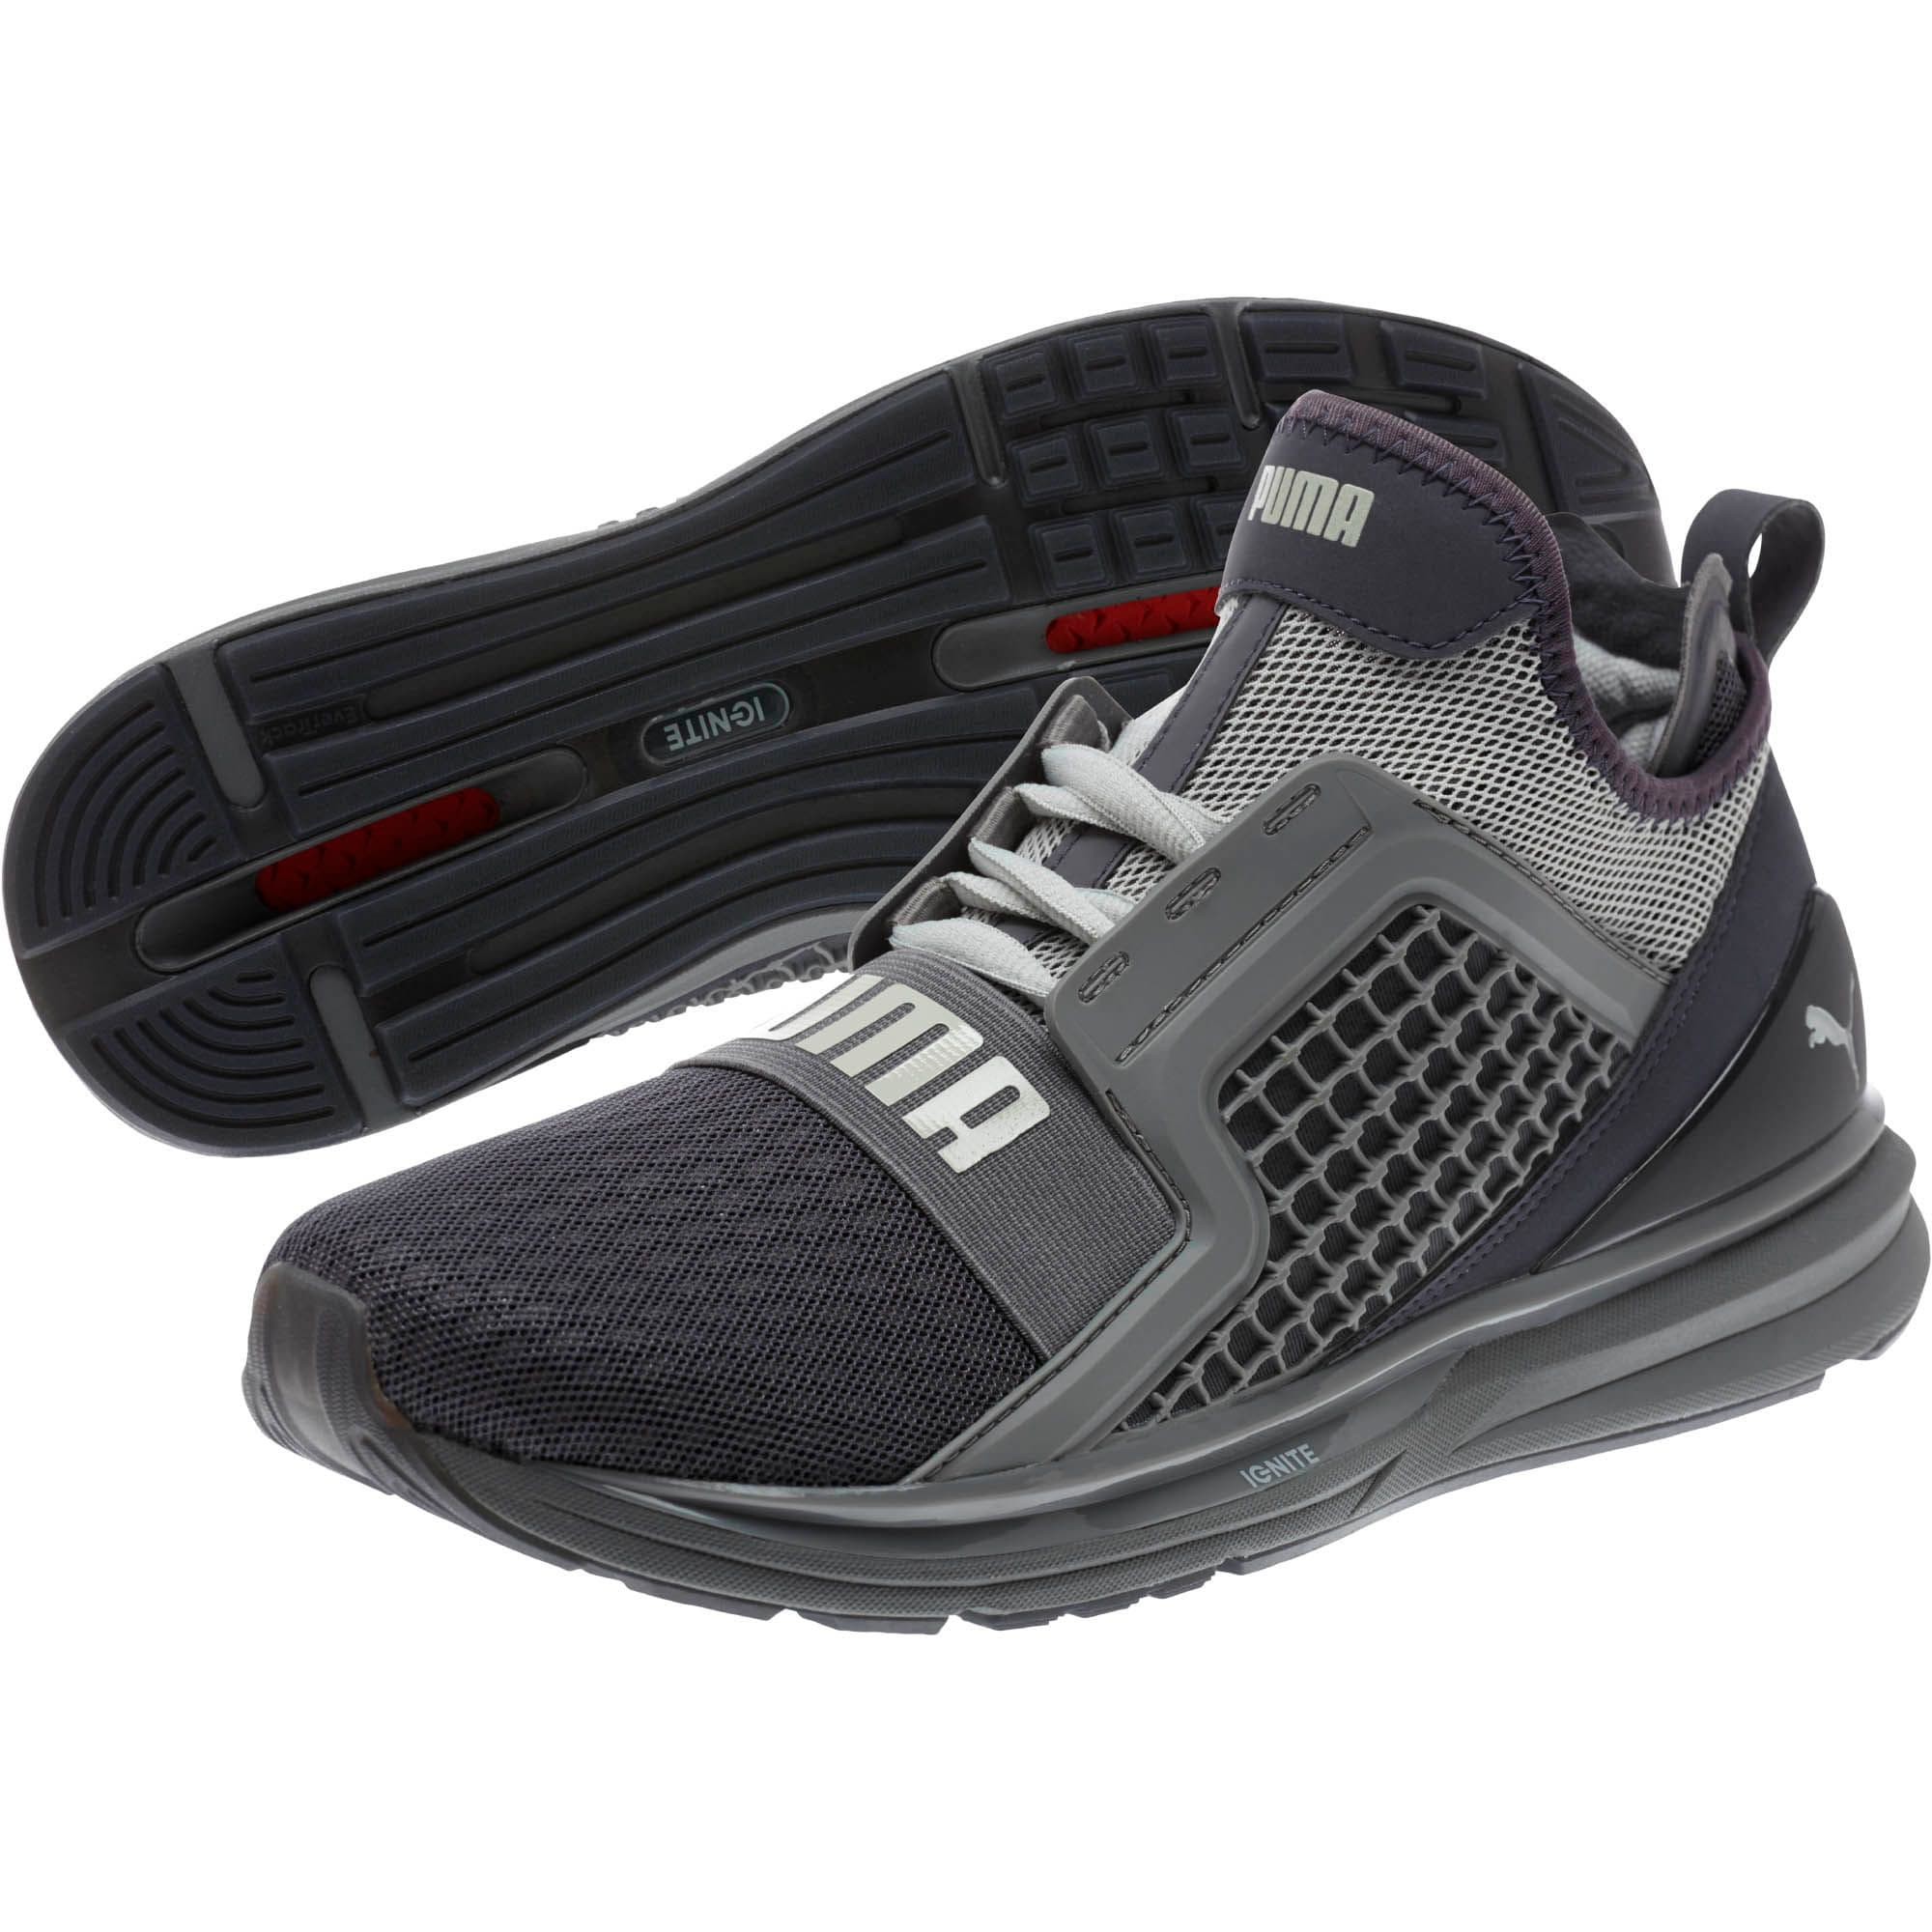 100% authentic 5f5a3 636e0 IGNITE Limitless Men's Running Shoes